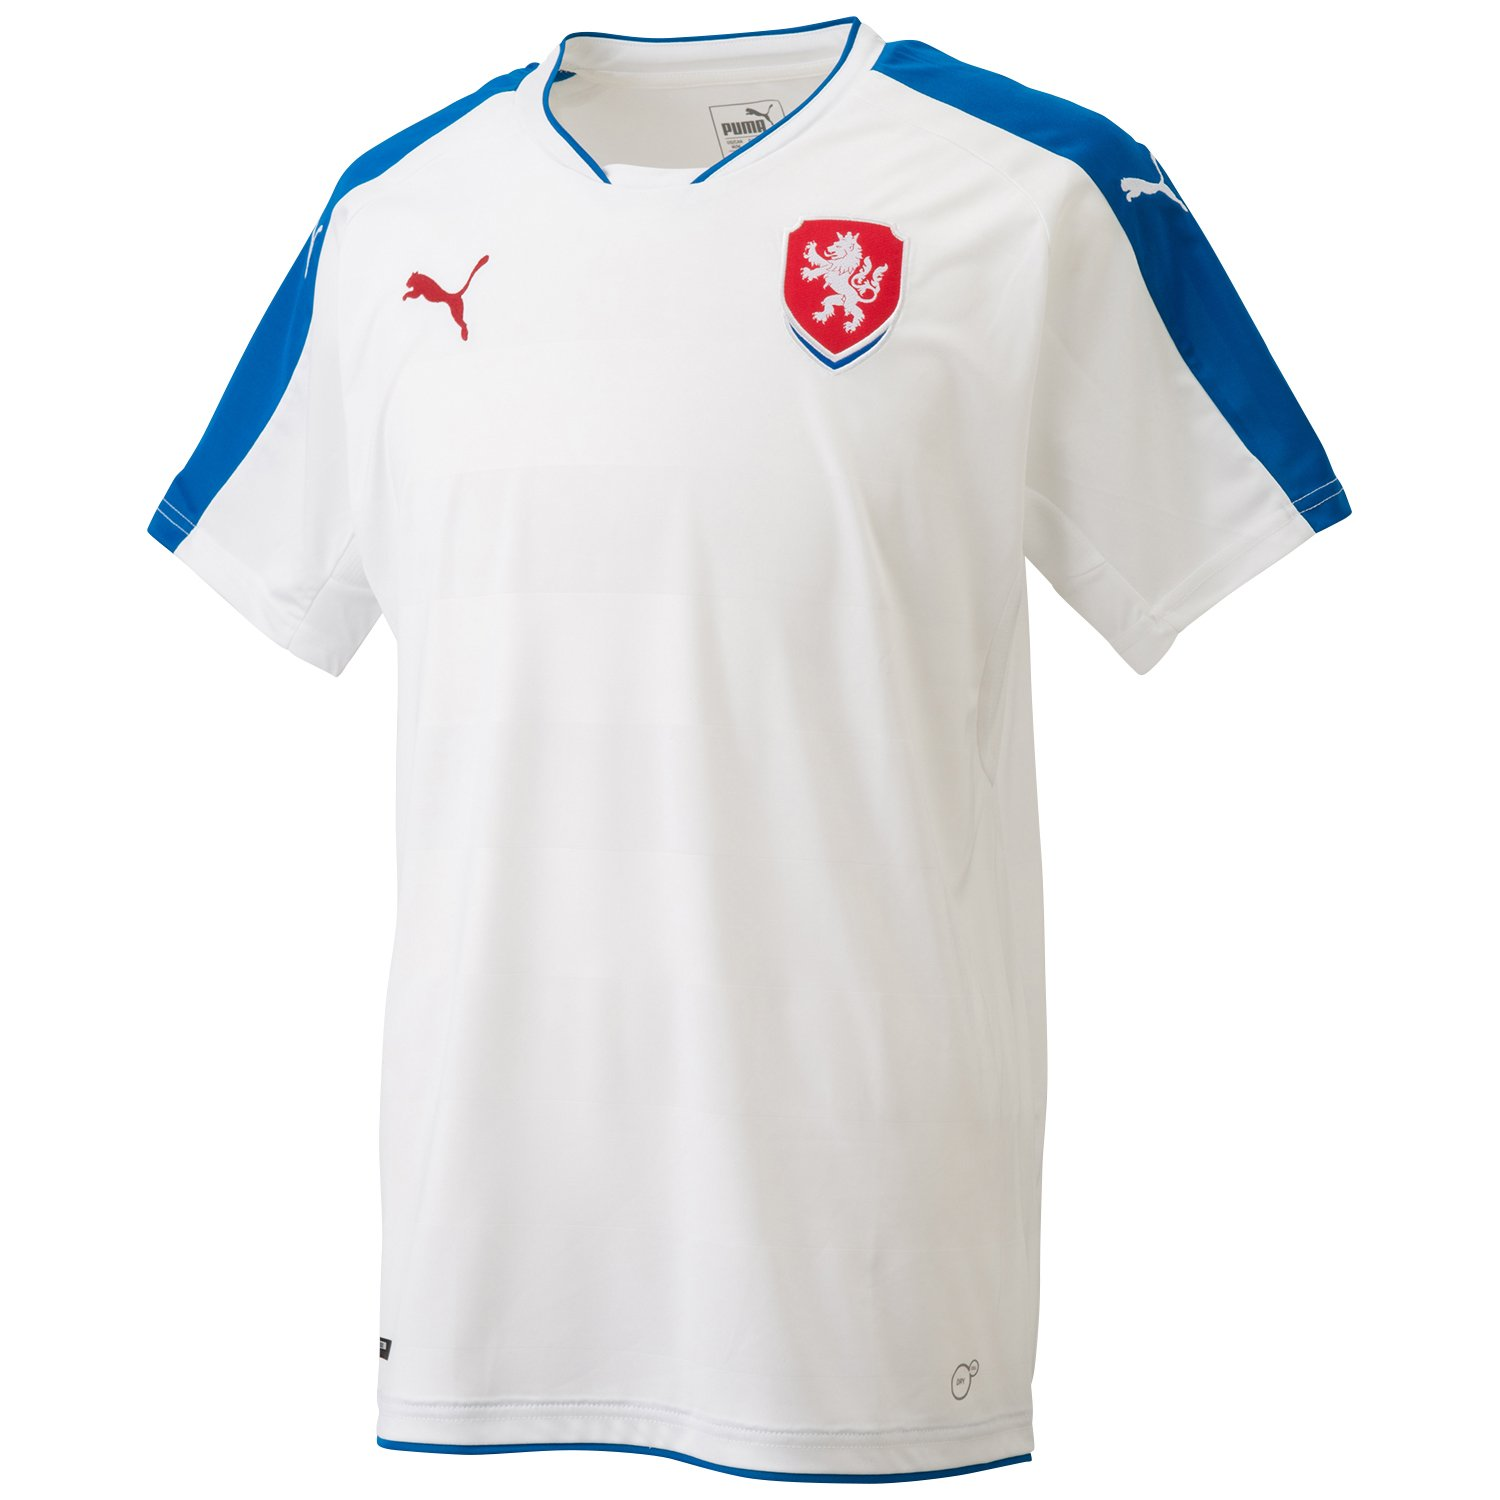 Puma 2016-2017 Czech Republic Away Football Soccer T-Shirt Trikot